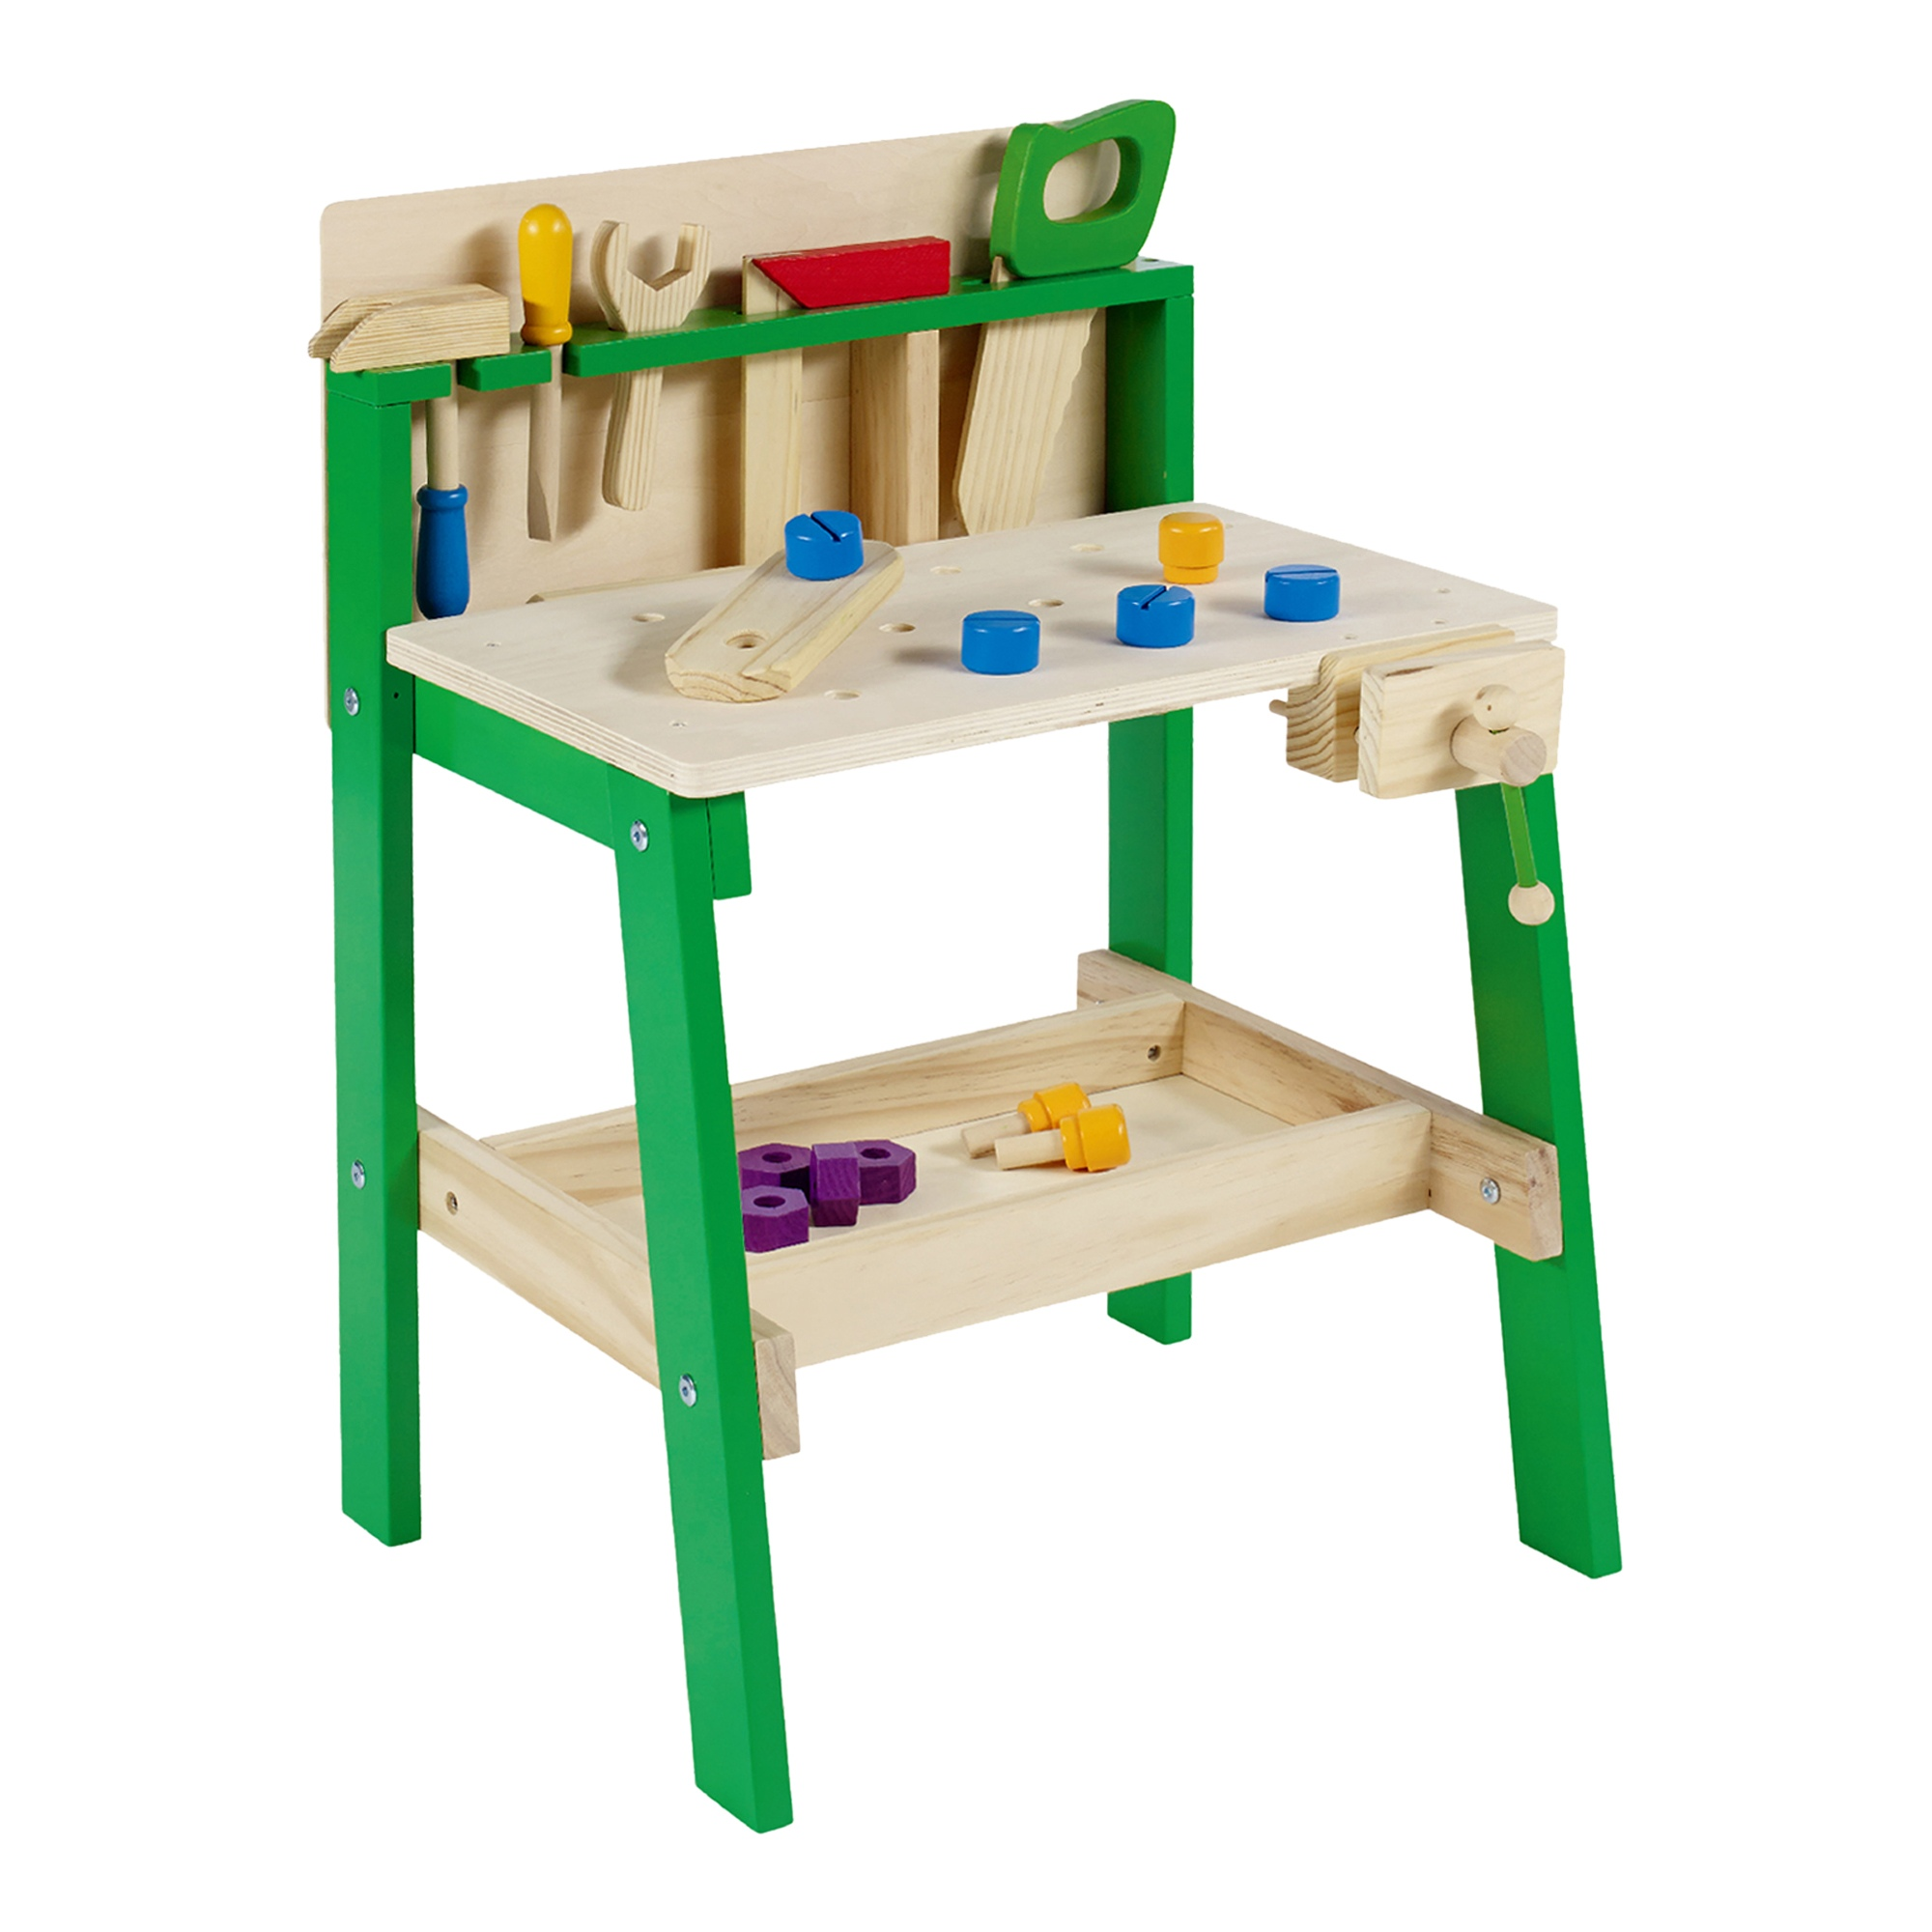 Kids Tool Work Bench Wooden Diy Table Work Creative Role Play Pretend Activity Ebay